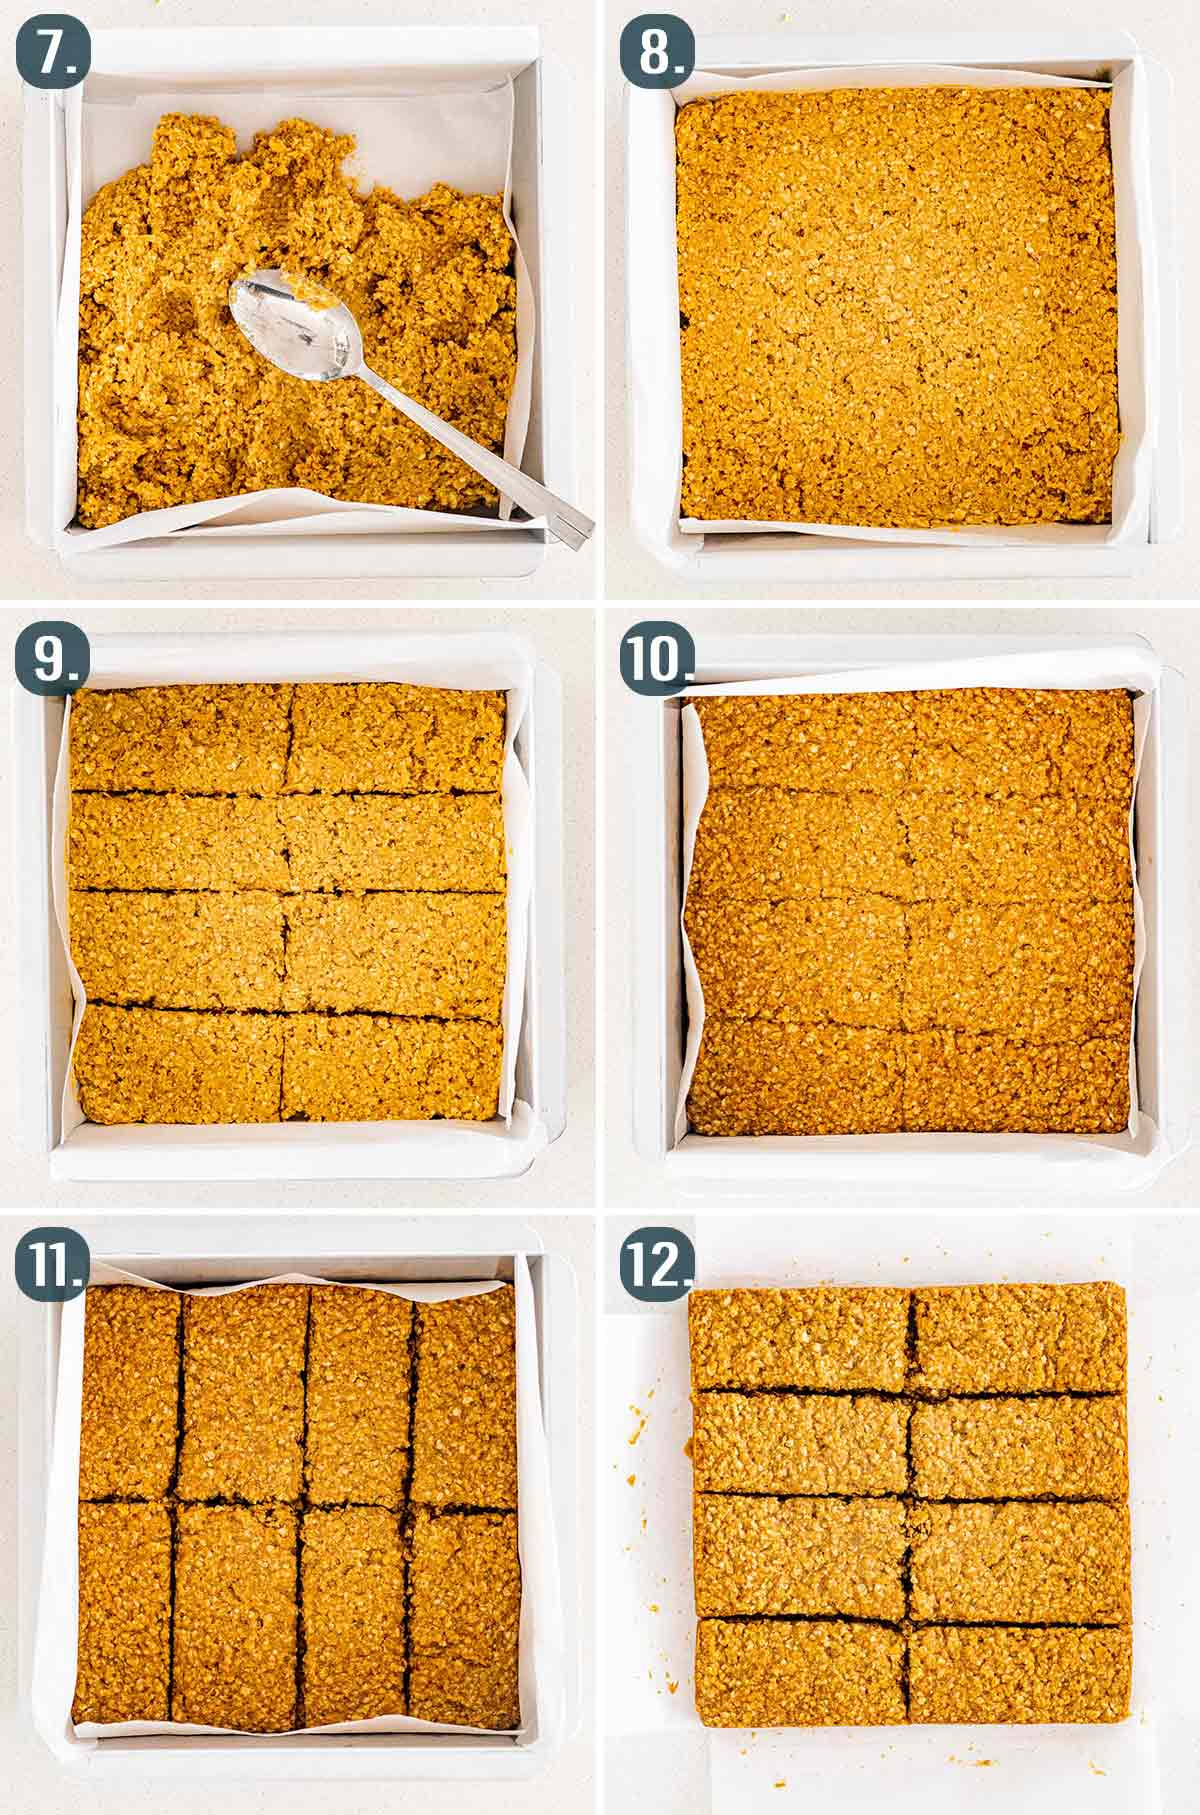 process shots showing how to prep the oatcake batter in the pan and bake it.